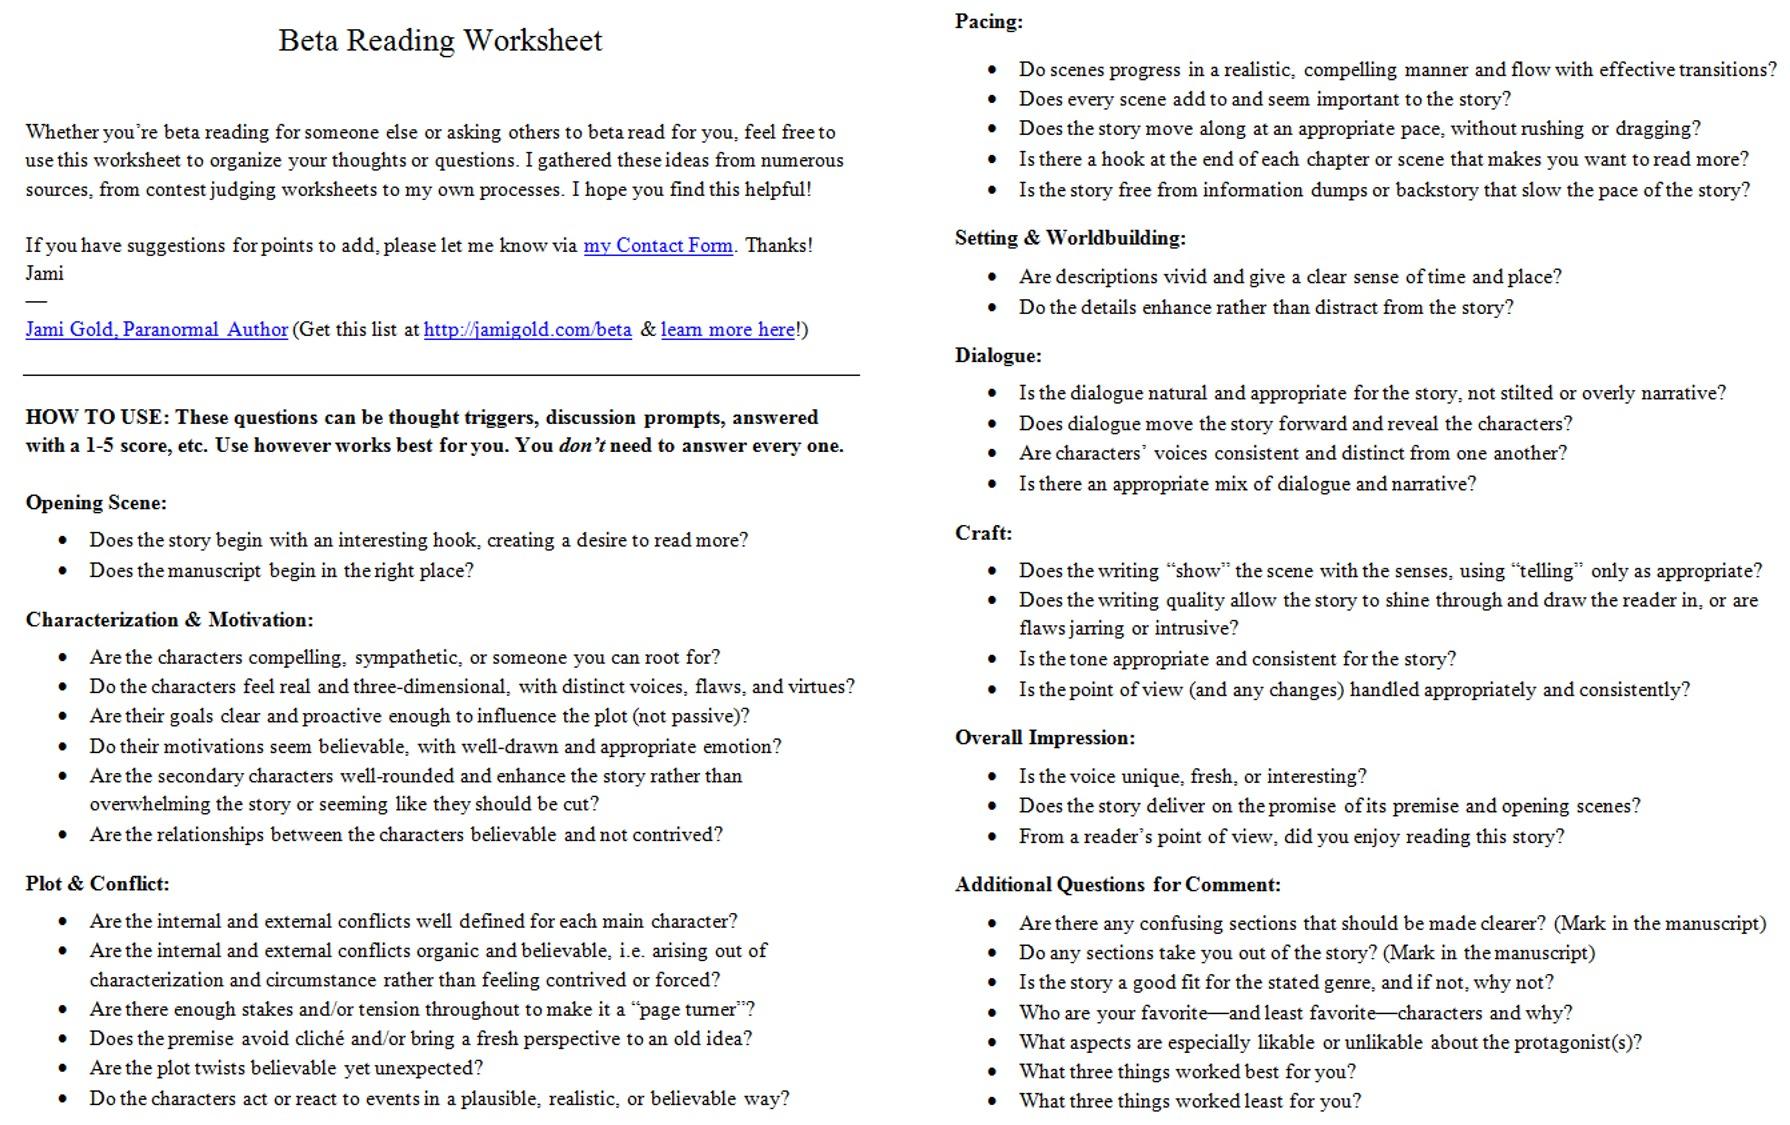 Weirdmailus  Unusual Worksheets For Writers  Jami Gold Paranormal Author With Fetching Screen Shot Of The Twopage Beta Reading Worksheet With Beauteous Reference Worksheet Also Comparing Fractions To Decimals Worksheet In Addition English Worksheets For Th Grade And  Angry Men Worksheets As Well As Multiplying  Digit By  Digit Worksheets Additionally Equation Of Lines Worksheet From Jamigoldcom With Weirdmailus  Fetching Worksheets For Writers  Jami Gold Paranormal Author With Beauteous Screen Shot Of The Twopage Beta Reading Worksheet And Unusual Reference Worksheet Also Comparing Fractions To Decimals Worksheet In Addition English Worksheets For Th Grade From Jamigoldcom